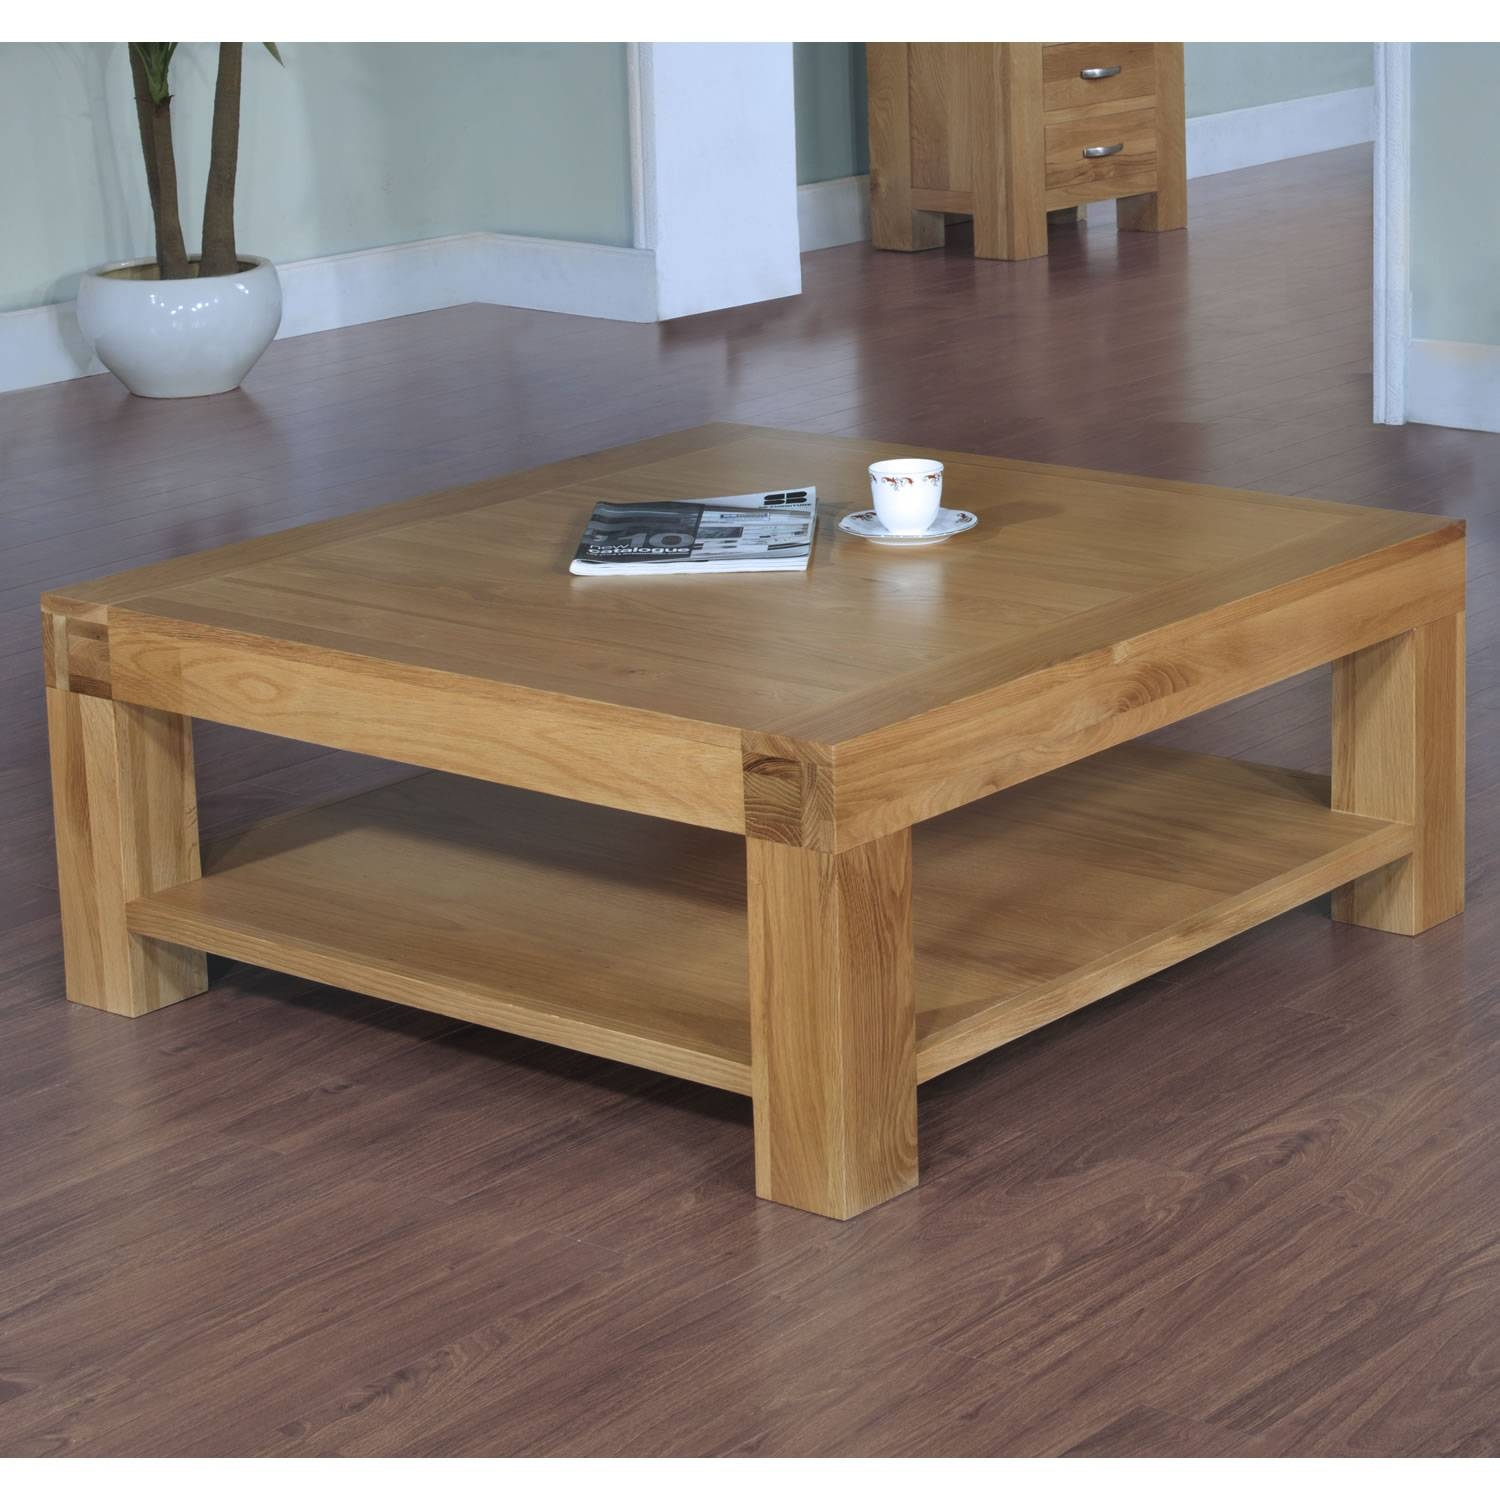 Helpful Square Coffee Tables | Home Furniture And Decor pertaining to Square Coffee Tables (Image 13 of 30)